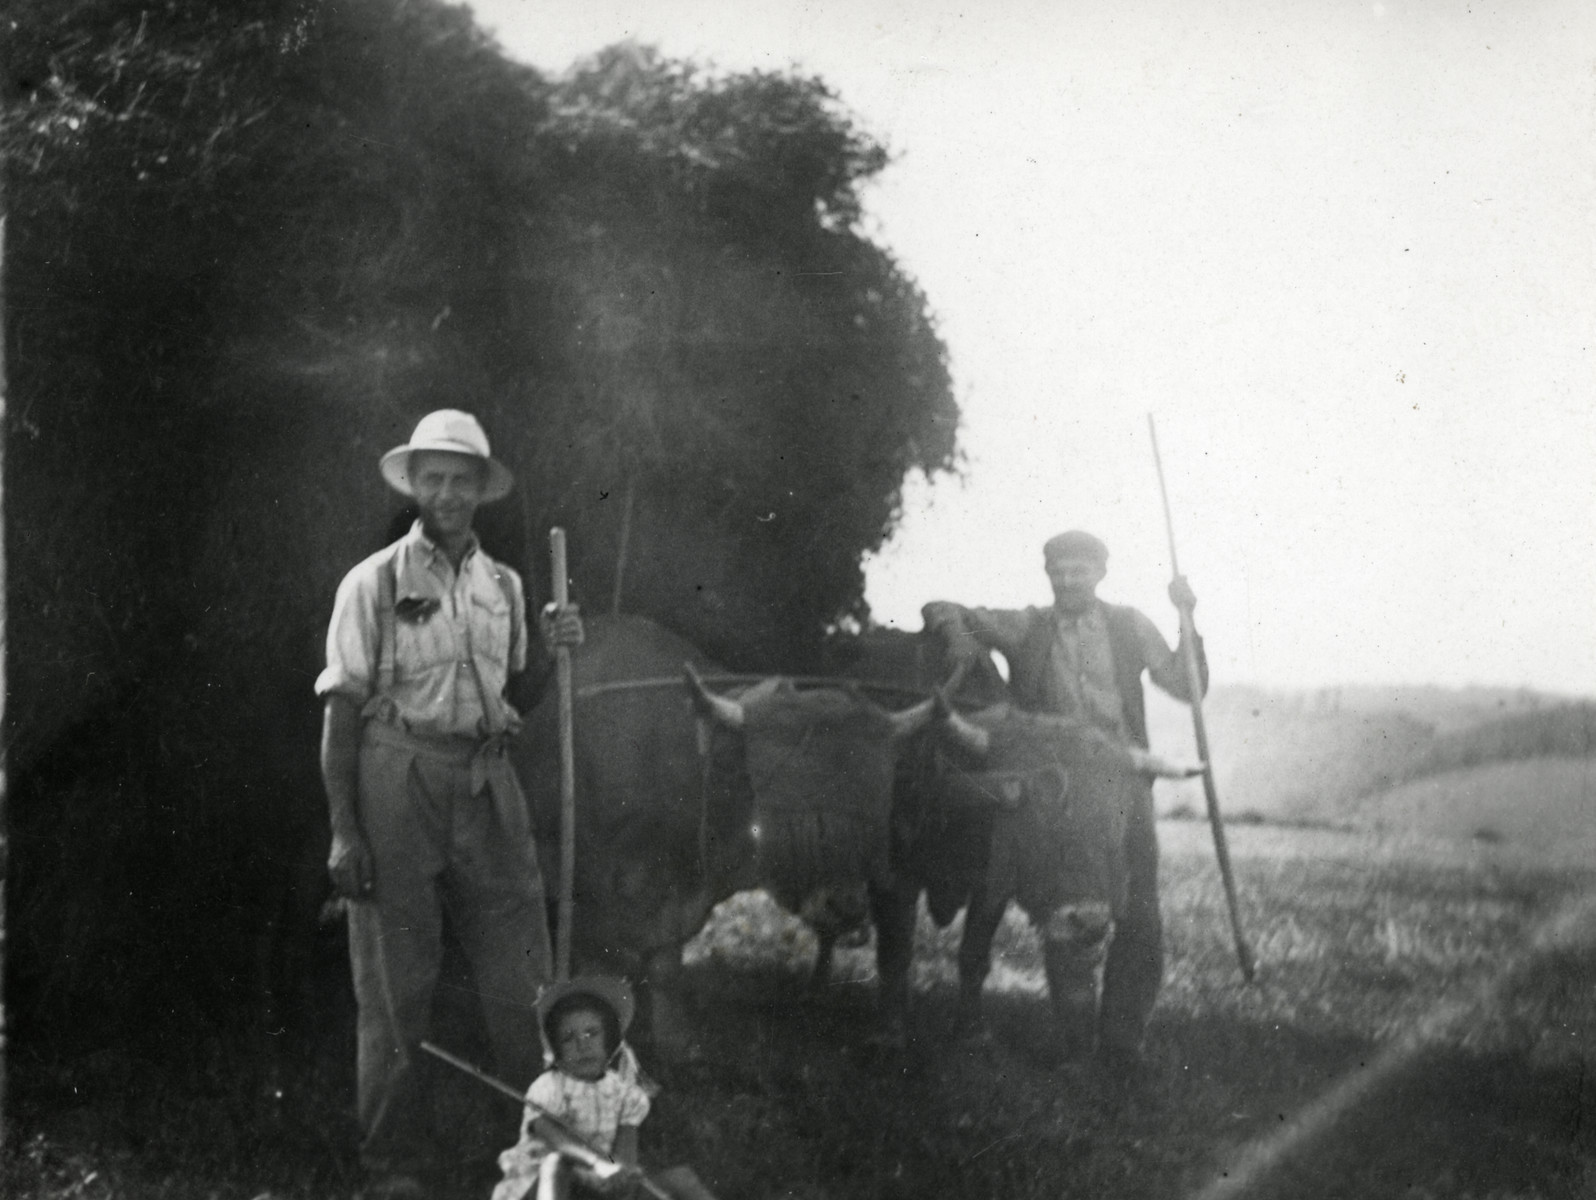 Beatrice Heffer, the donor, is sitting in front of two oxen pulling a carriage full of hay. Her father, Alfred Kahn, is standing behind her. His employer, Mr. Combes, is leaning on one of the oxen.